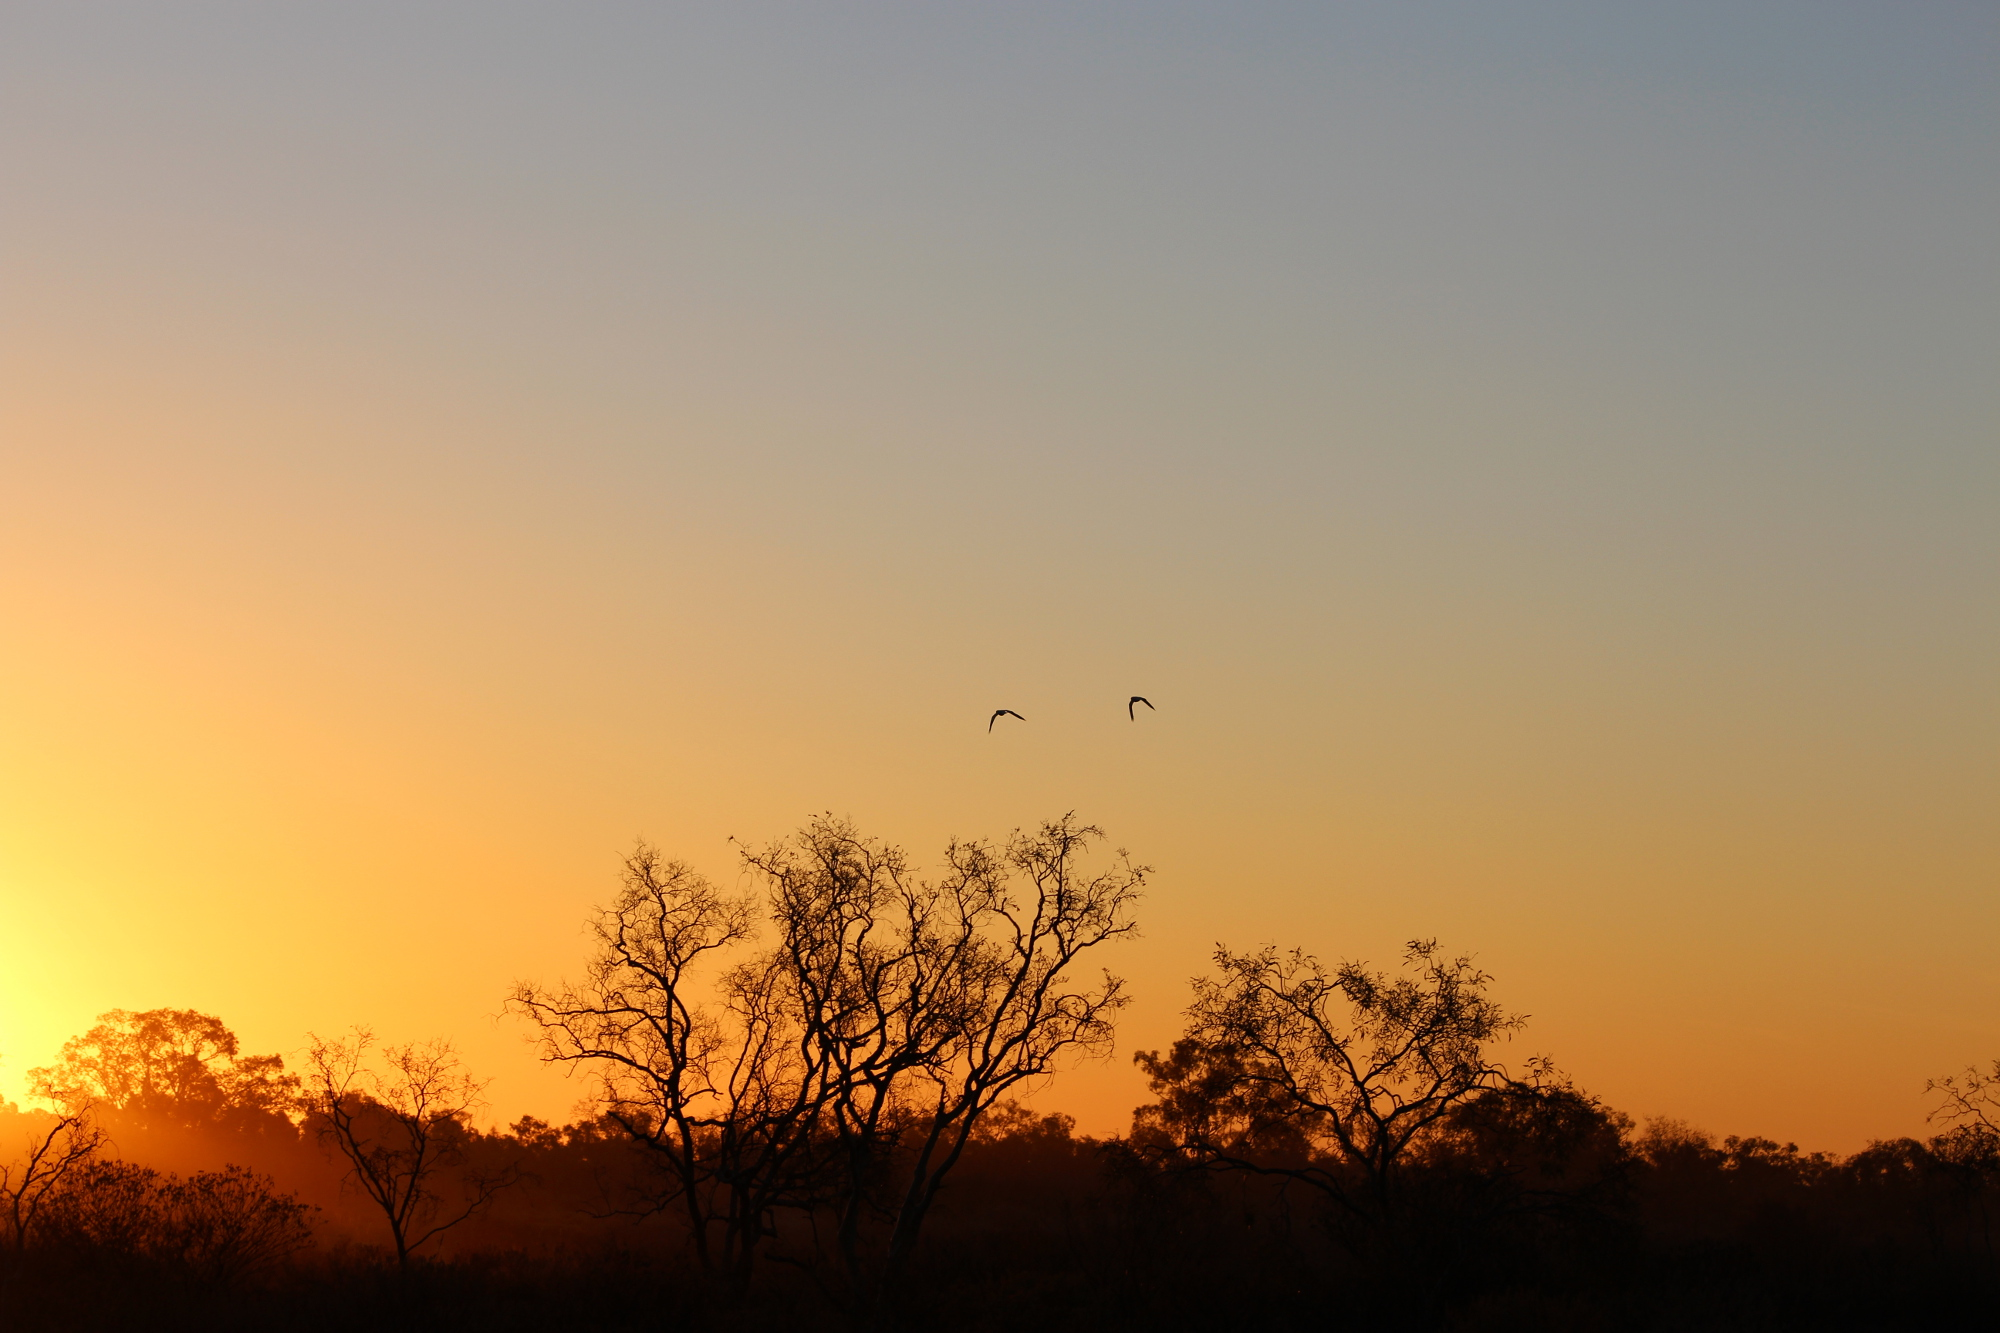 Pair of galahs flying into the sunset at Bladensburg National Park. Backlit mulga trees. Sunset very yellow, tint of pale blue sky still visible. Photo by Emma Walton of Emma Walton Guiding, a nature Guide of South East Queensland